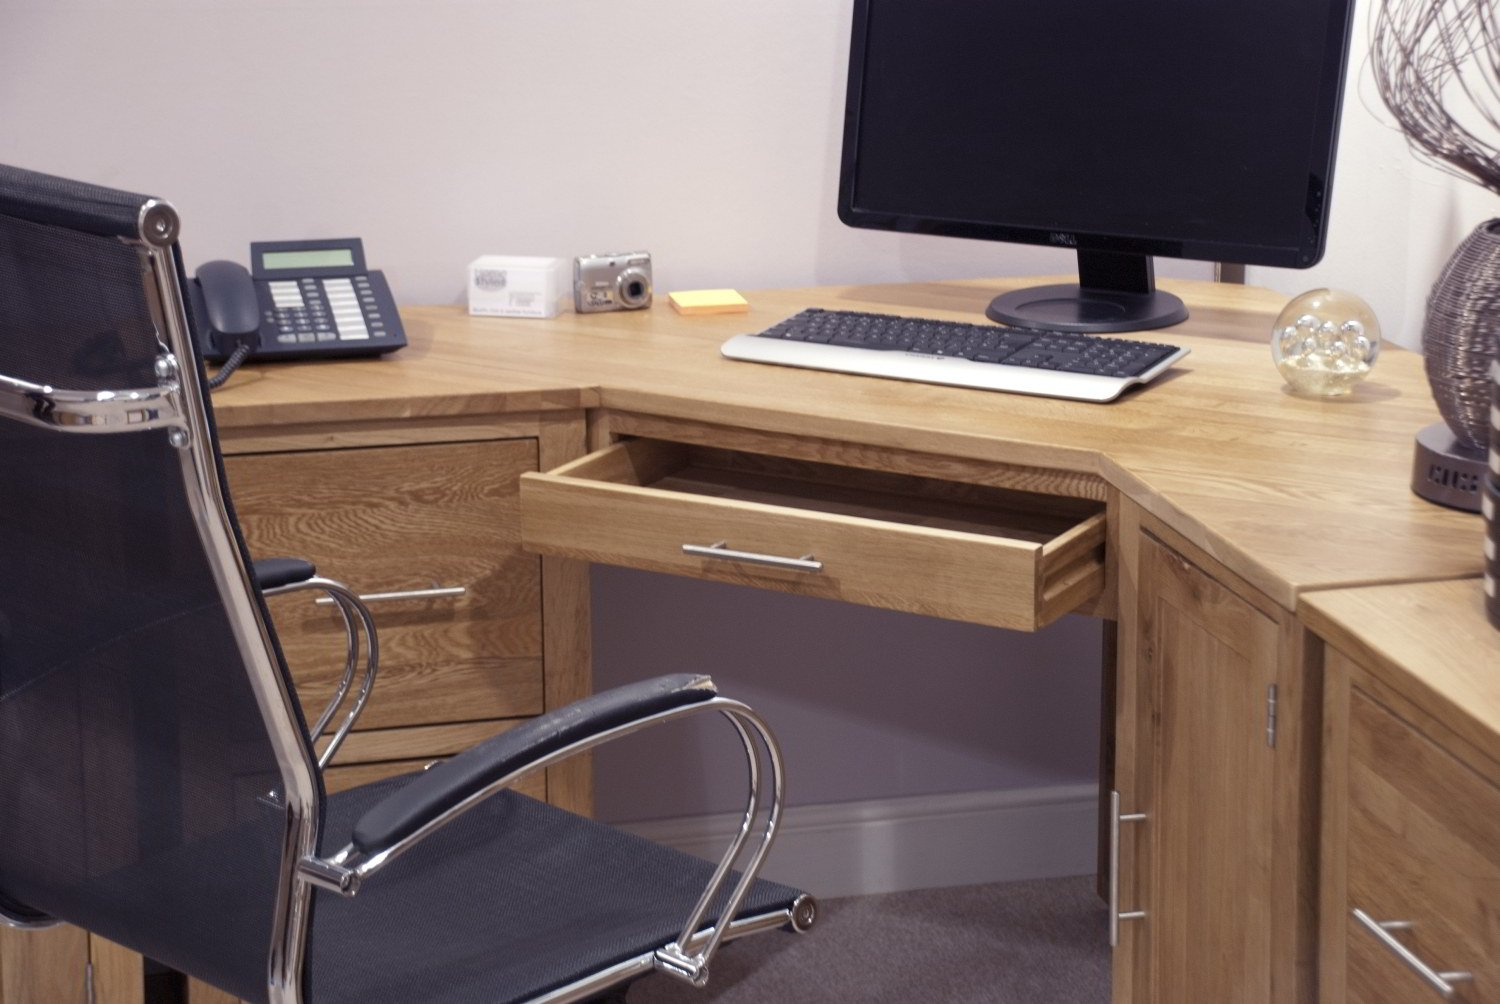 corner desk office. Eton Solid Oak Furniture Office PC Corner Computer Desk: Amazon.co.uk: Kitchen \u0026 Home Desk O